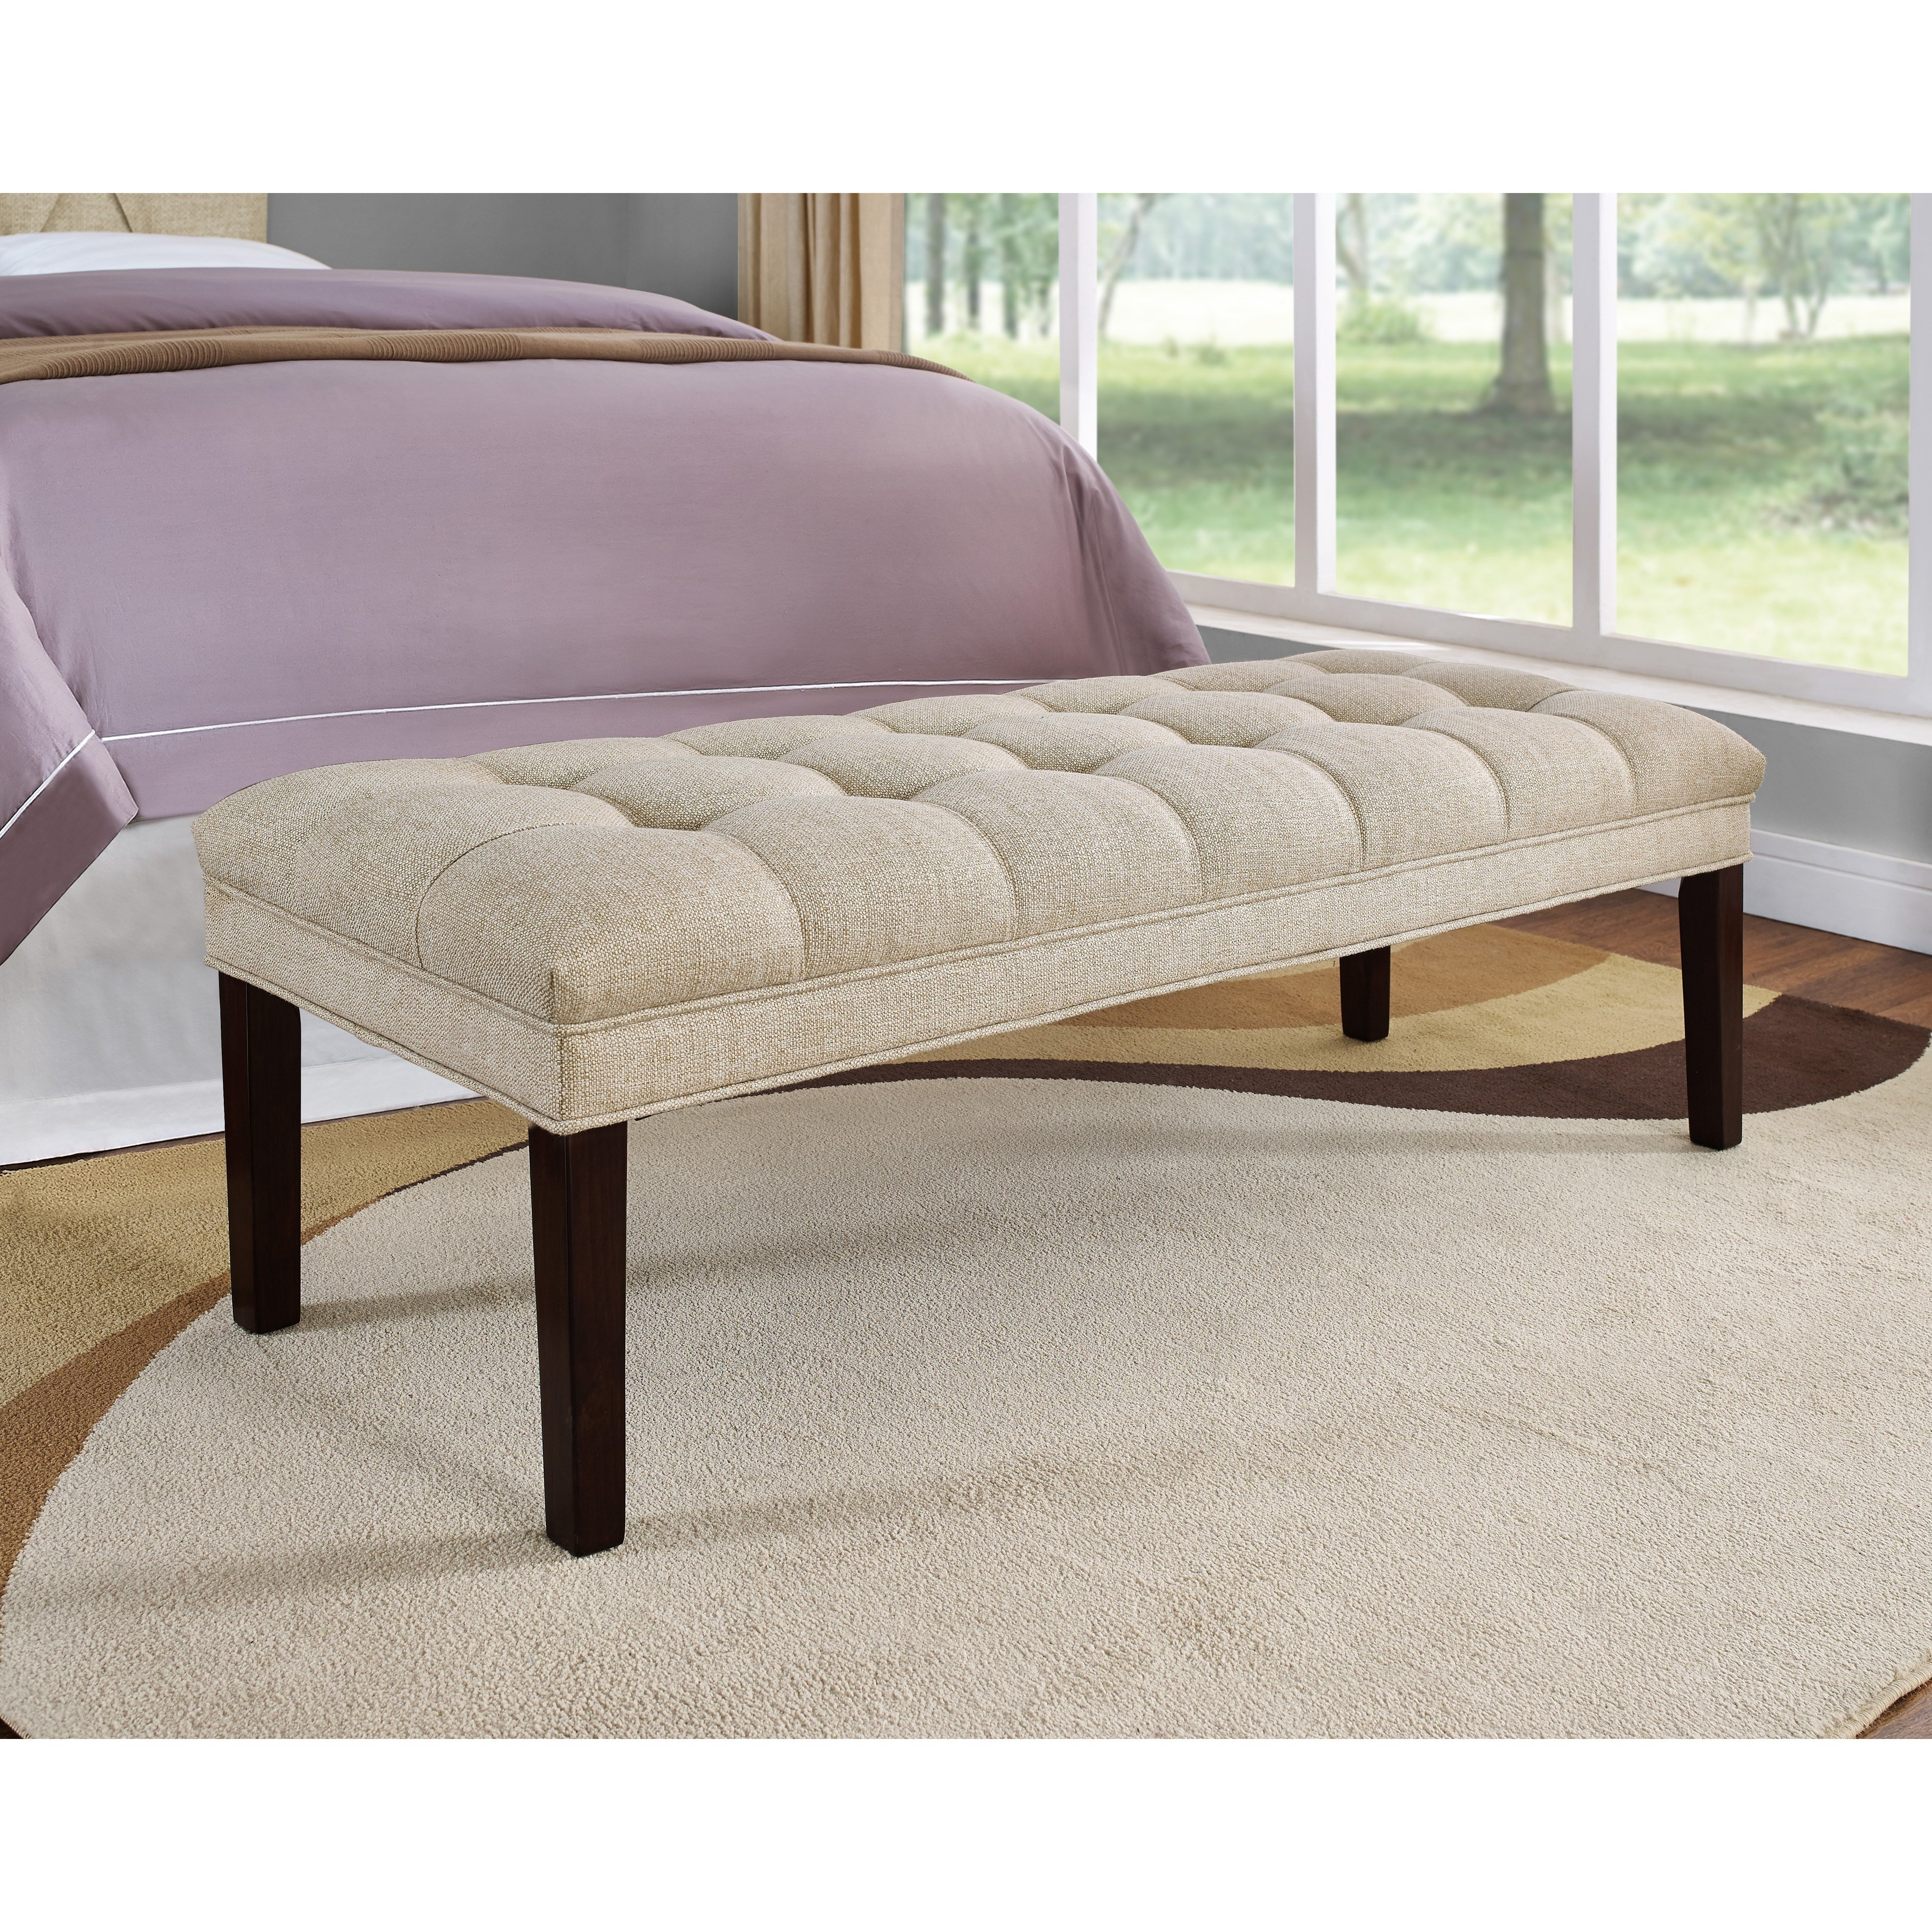 Best Upholstered Tufted Bedroom Bench Wayfair With Pictures